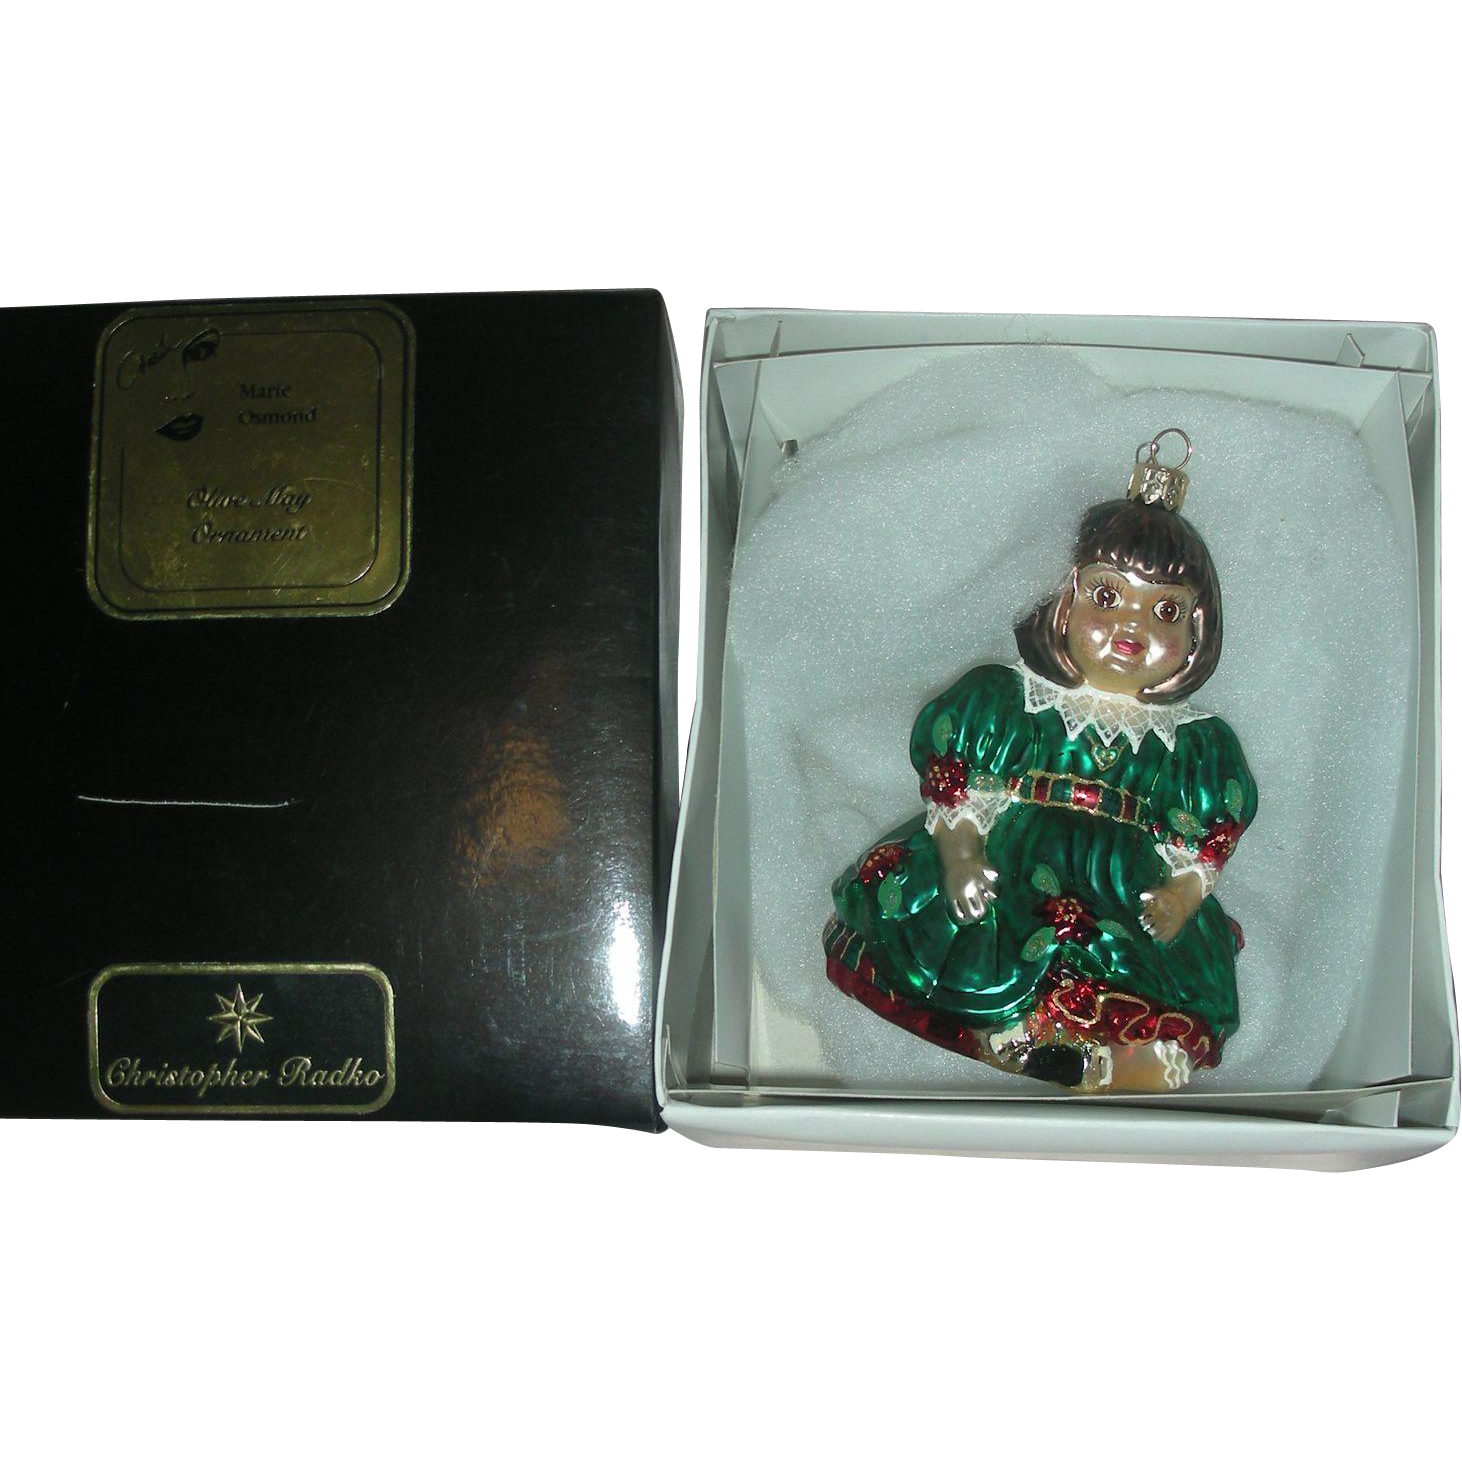 Christopher Radko Christmas Ornament Olive May Doll Marie Osmond